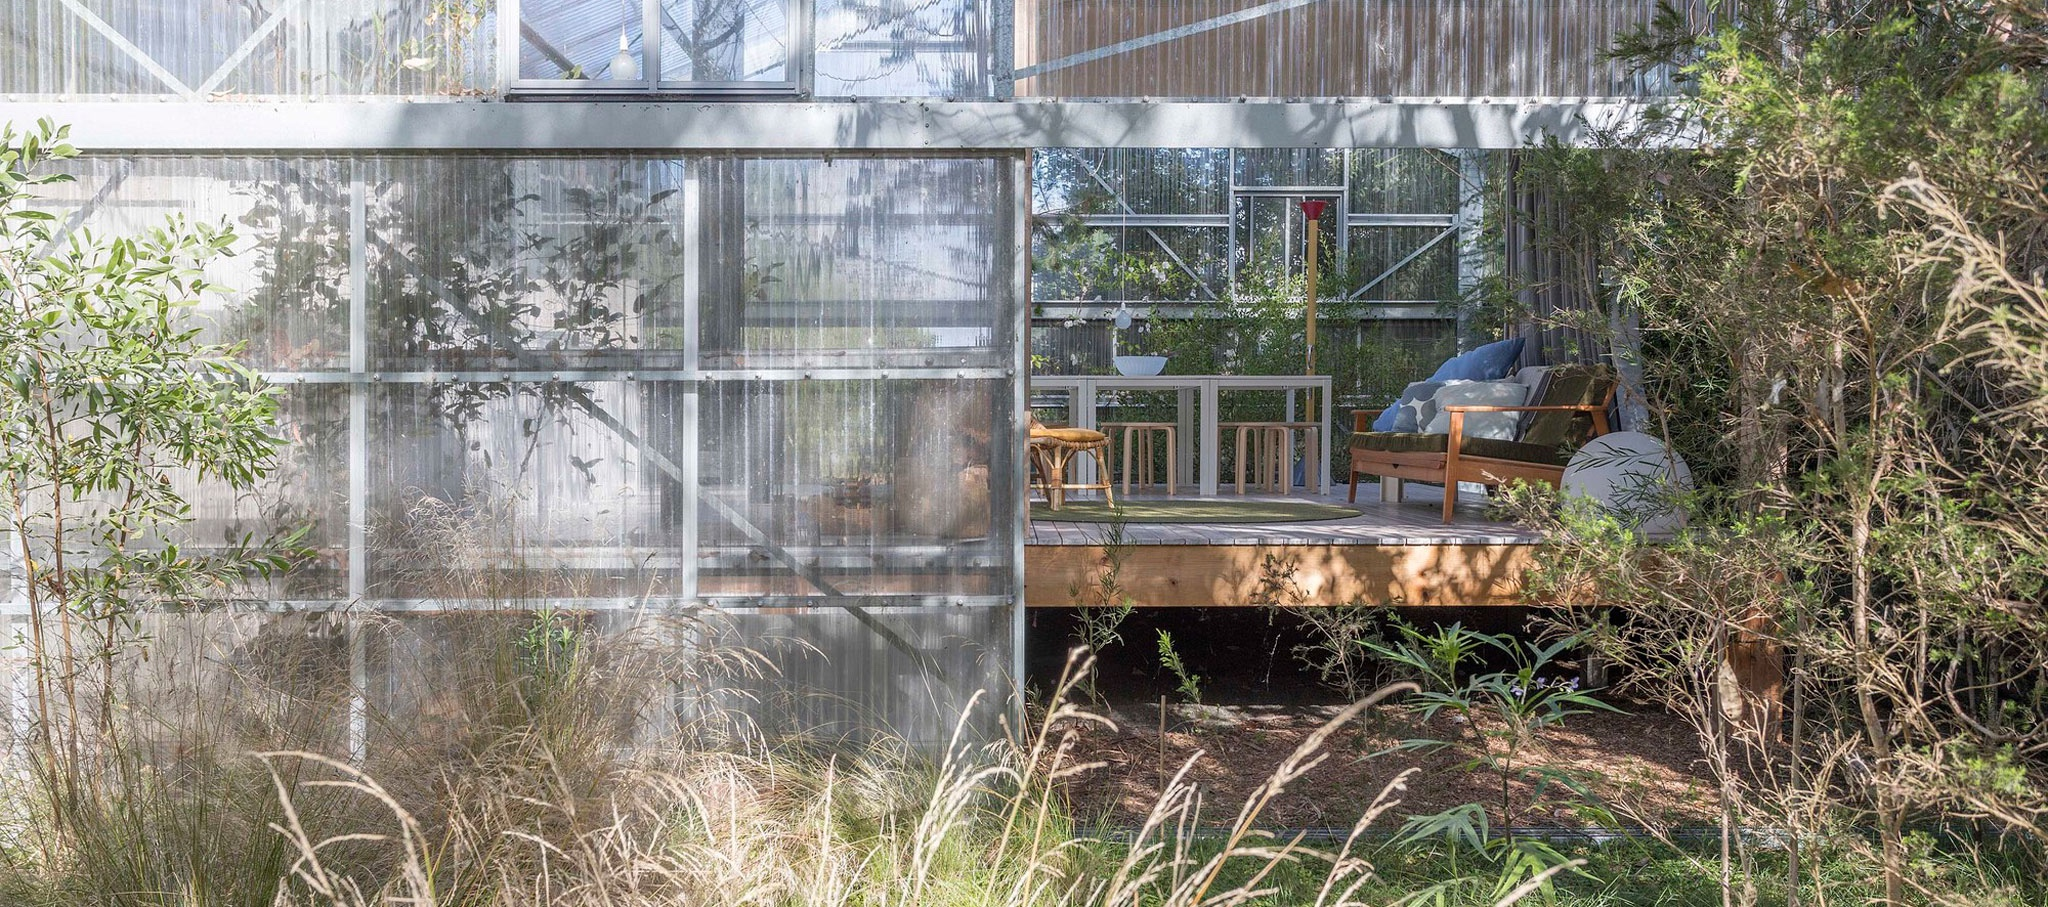 Ground (Garden House), 2018 – Westernport, Victoria, Australia. Curated by Linda Tegg and Baracco+Wright Architects, With David Fox. Photograph by  © Linda Tegg